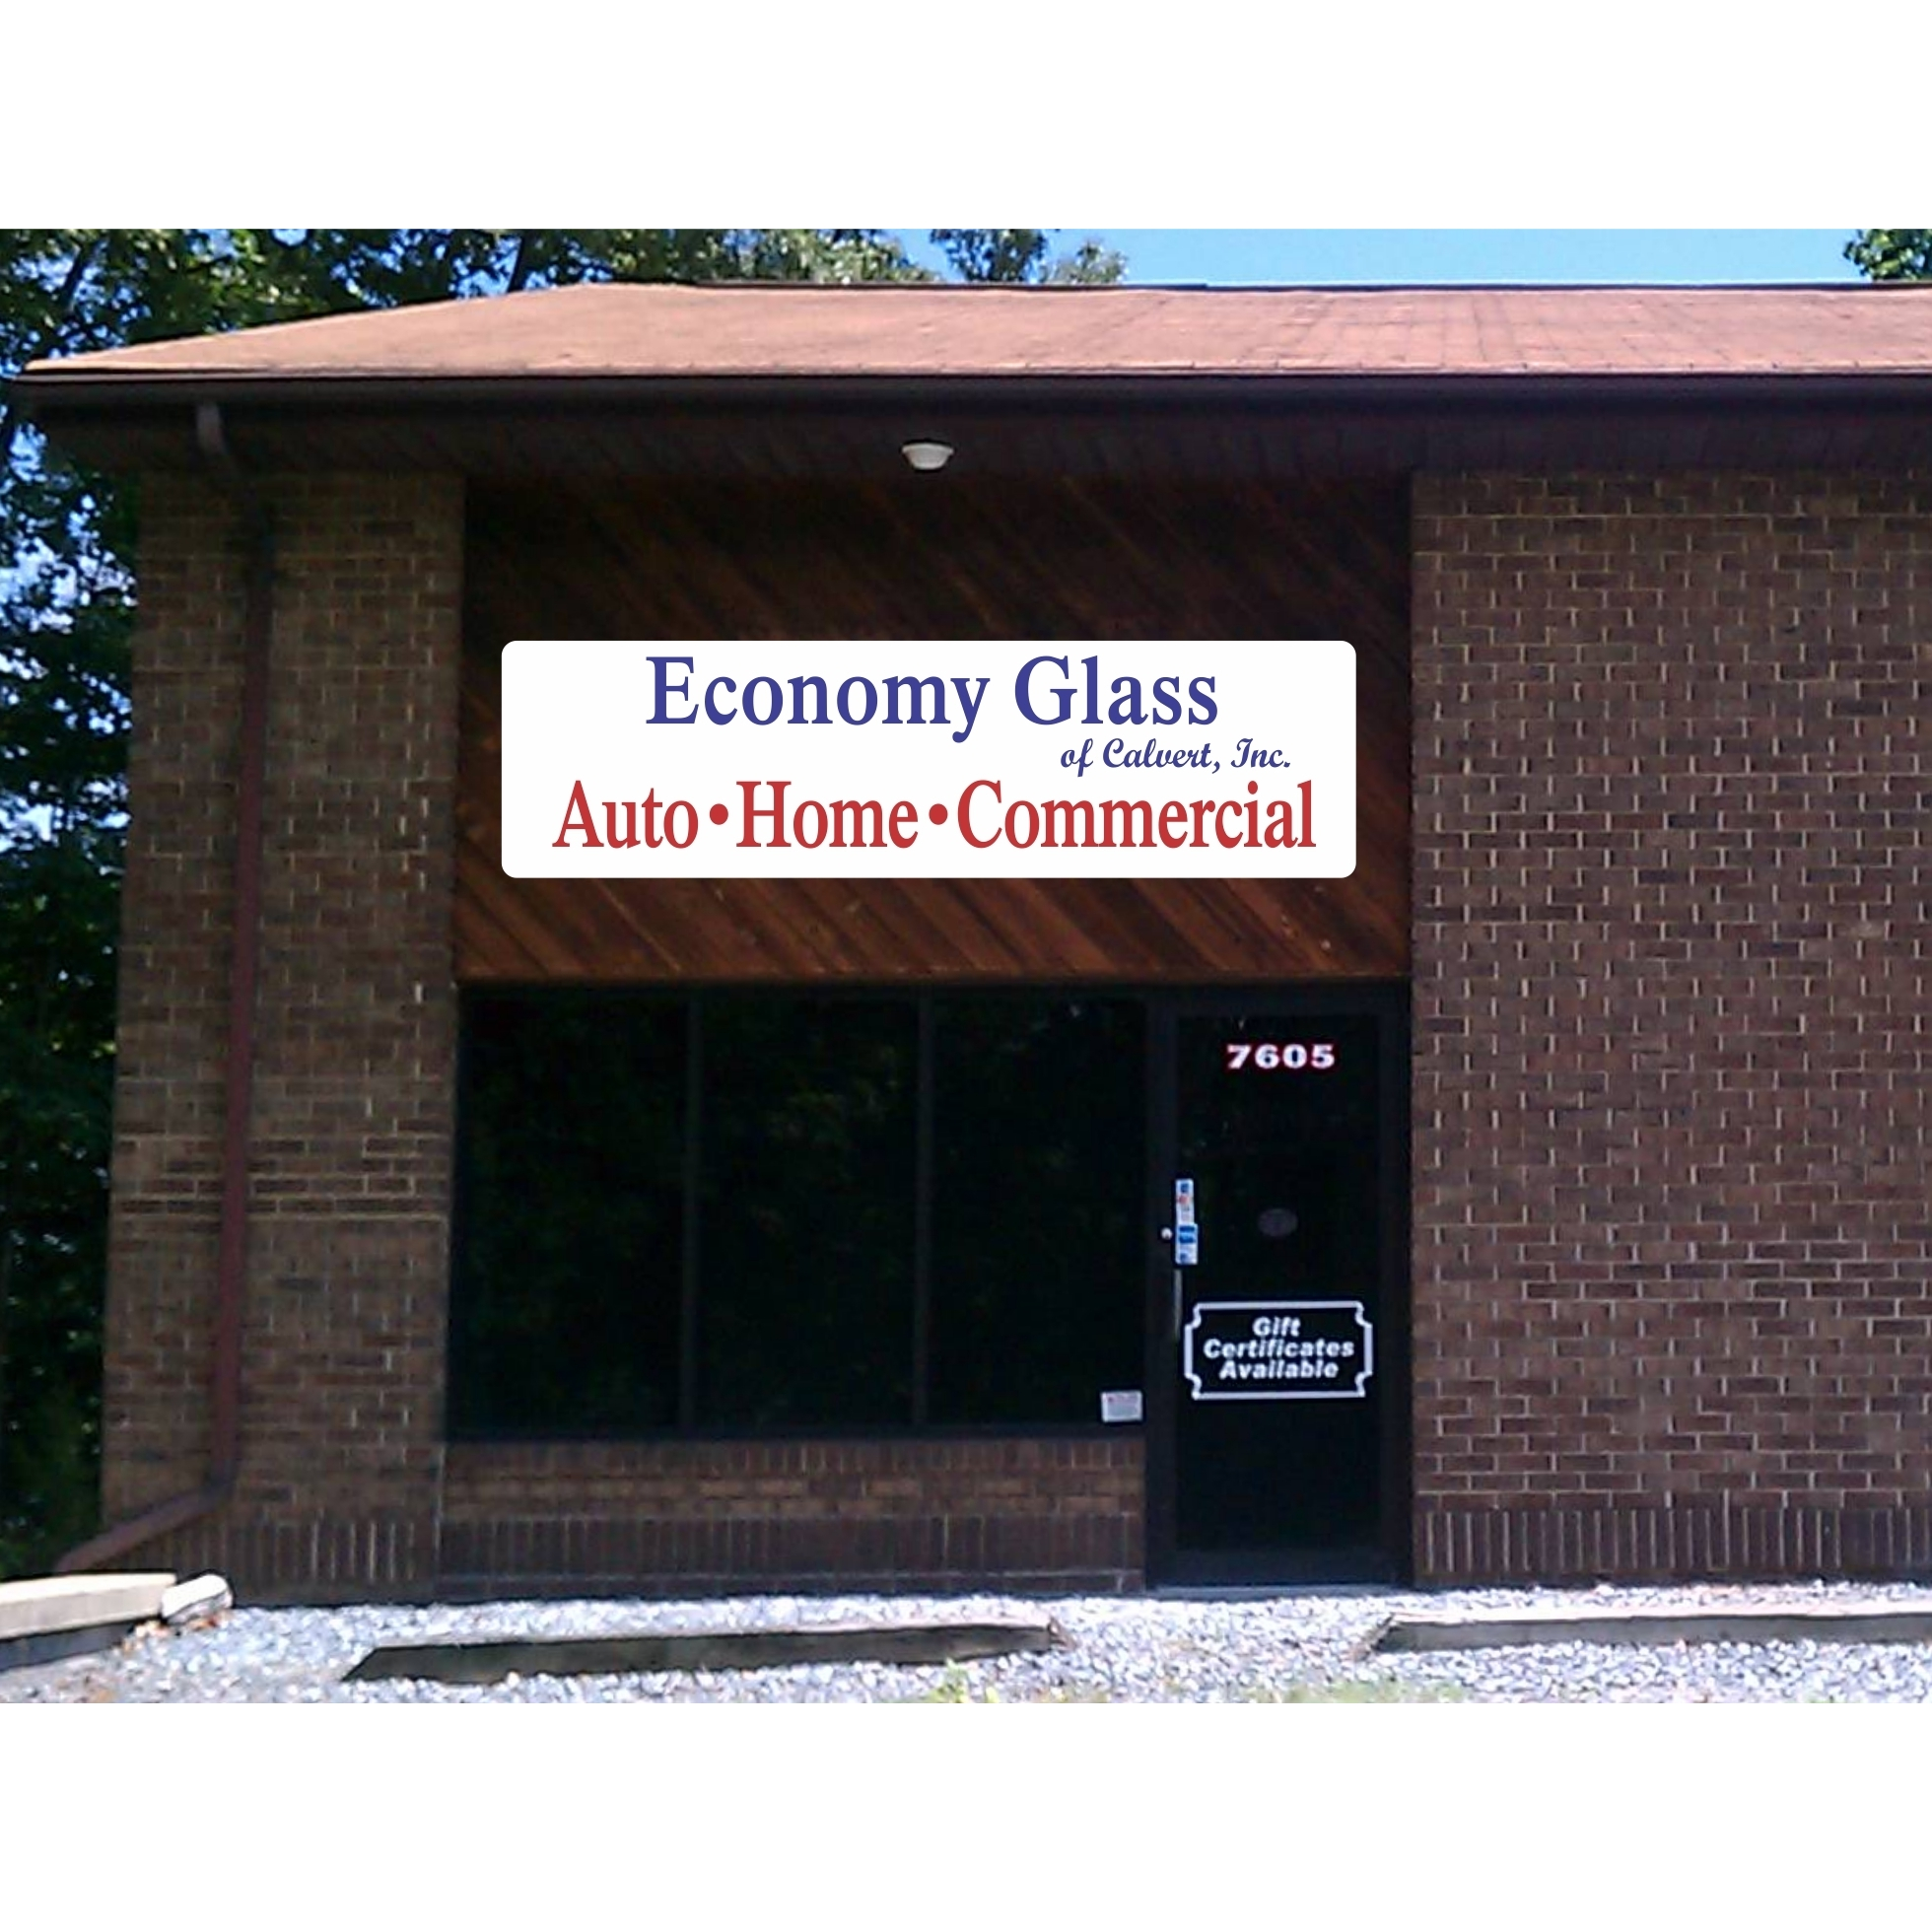 Auto Glass Shop in MD Owings 20736 Economy Glass of Calvert, Inc. 7605 Ginger Lane  (301)855-9054